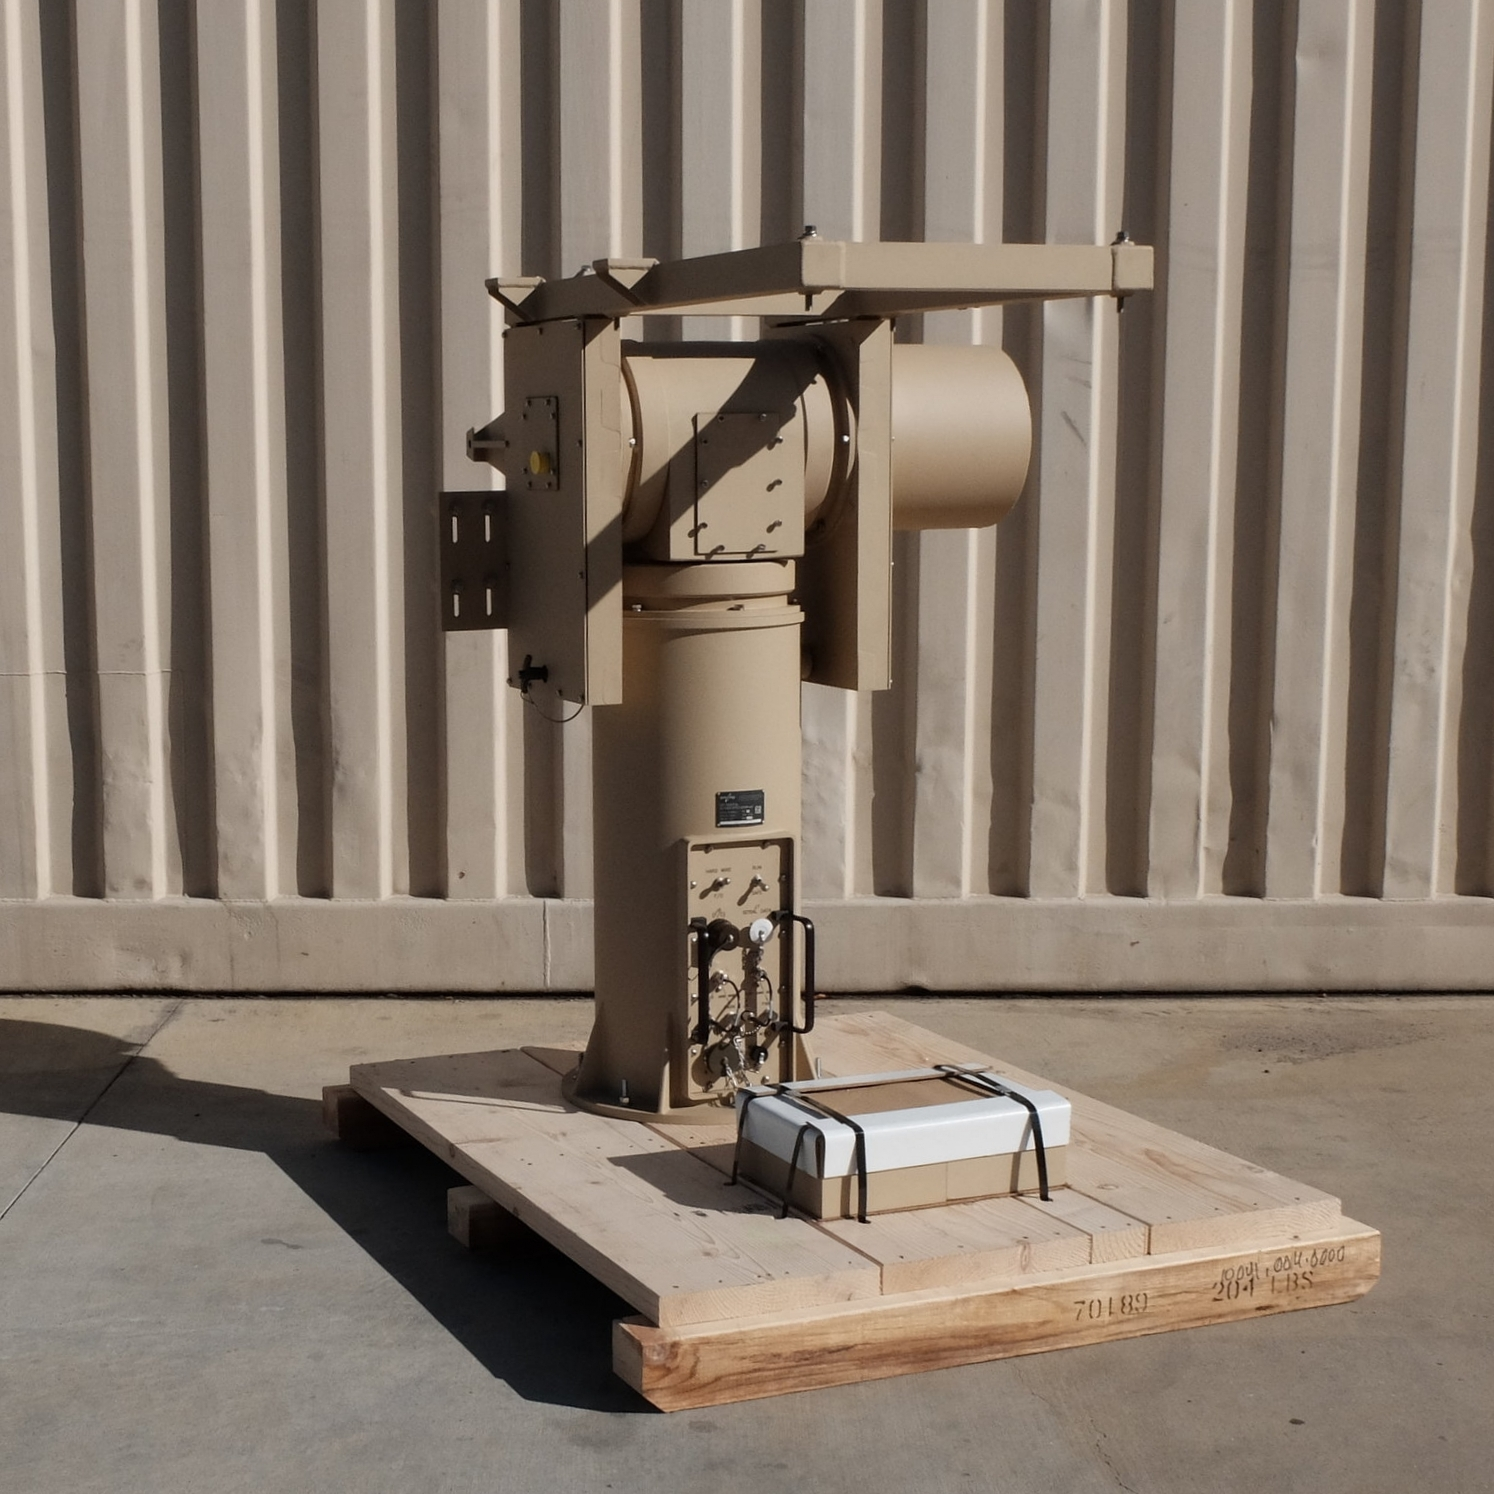 Serial No. 200 of RPM Model PG-1019B Series Elevation over Azimuth Antenna Pedestal ready for final crating/shipment